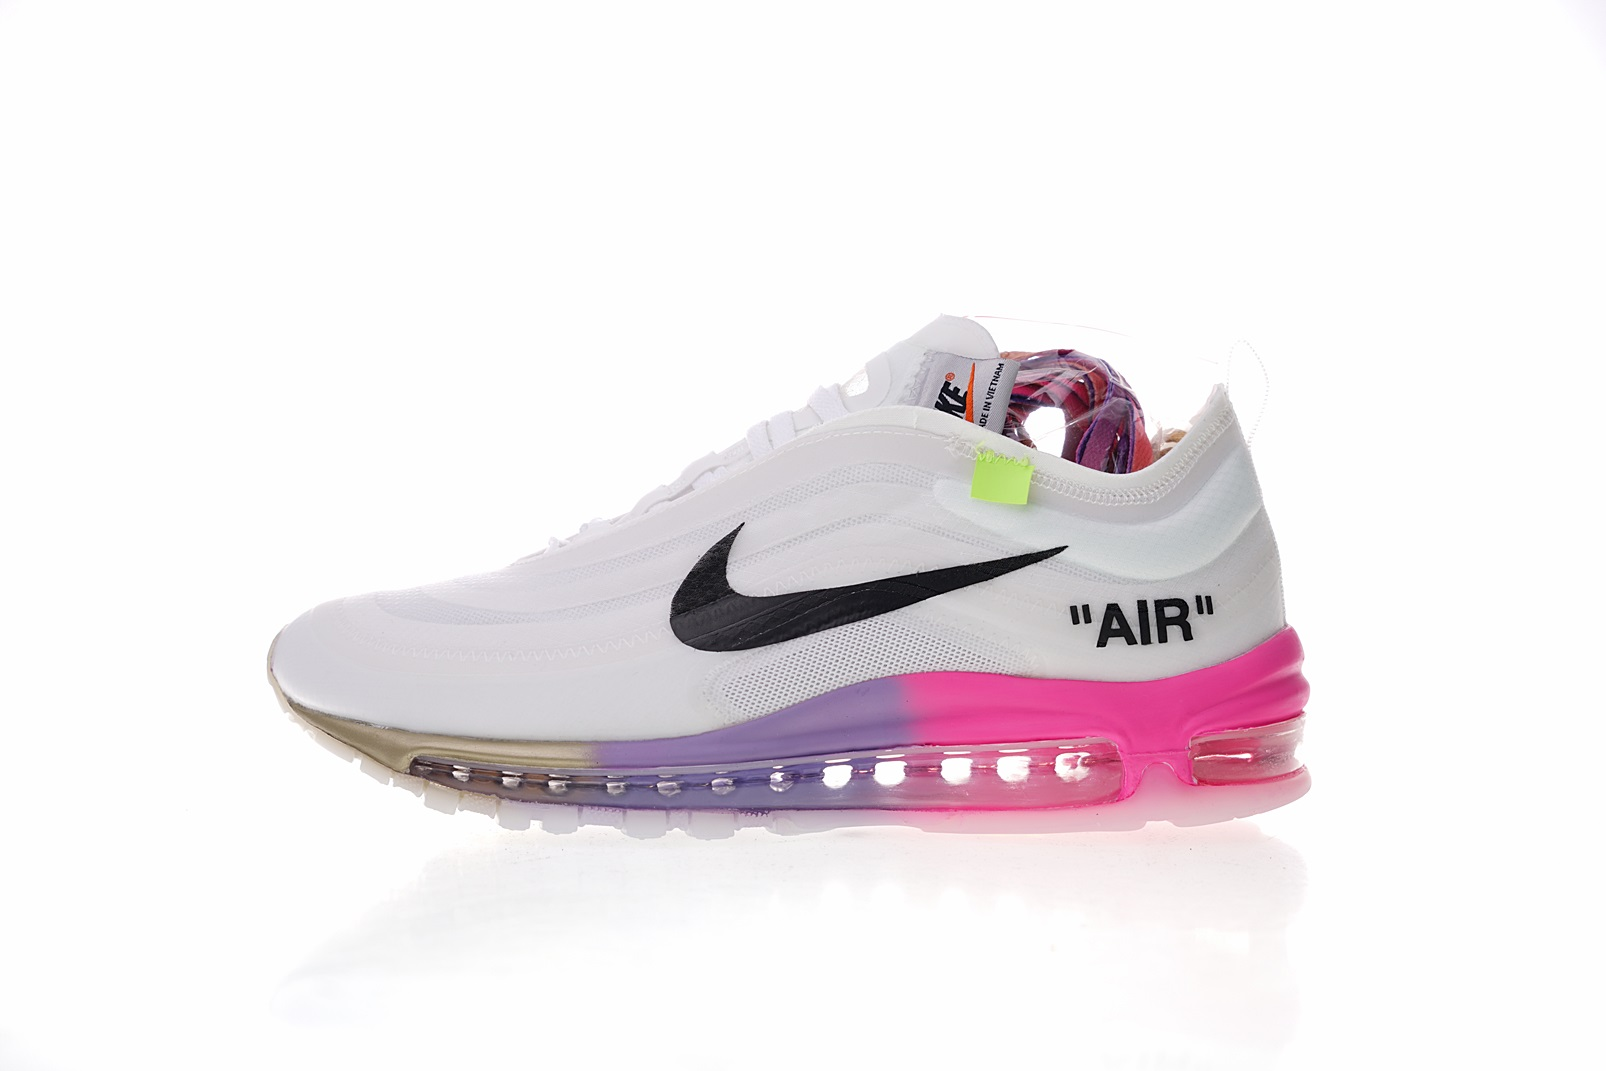 Off-White x Nike Air Max 97 'Queen' Off